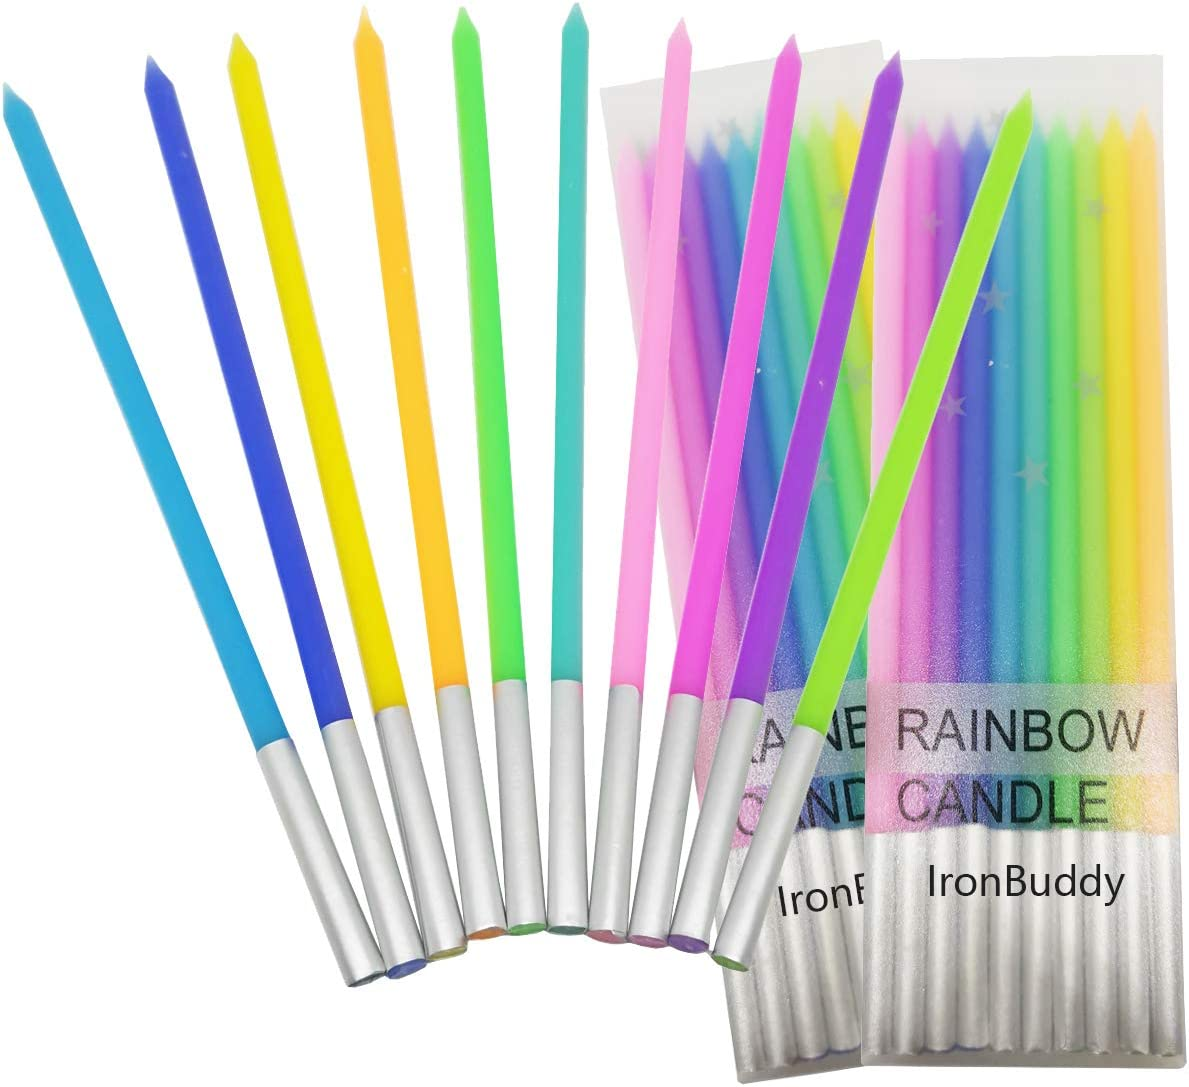 IronBuddy 30 Count Cake Candles Long Thin Cake Candles Metallic Birthday Candles in Holders for Party Wedding Birthday Cake Decorations (Rainbow Color-2)